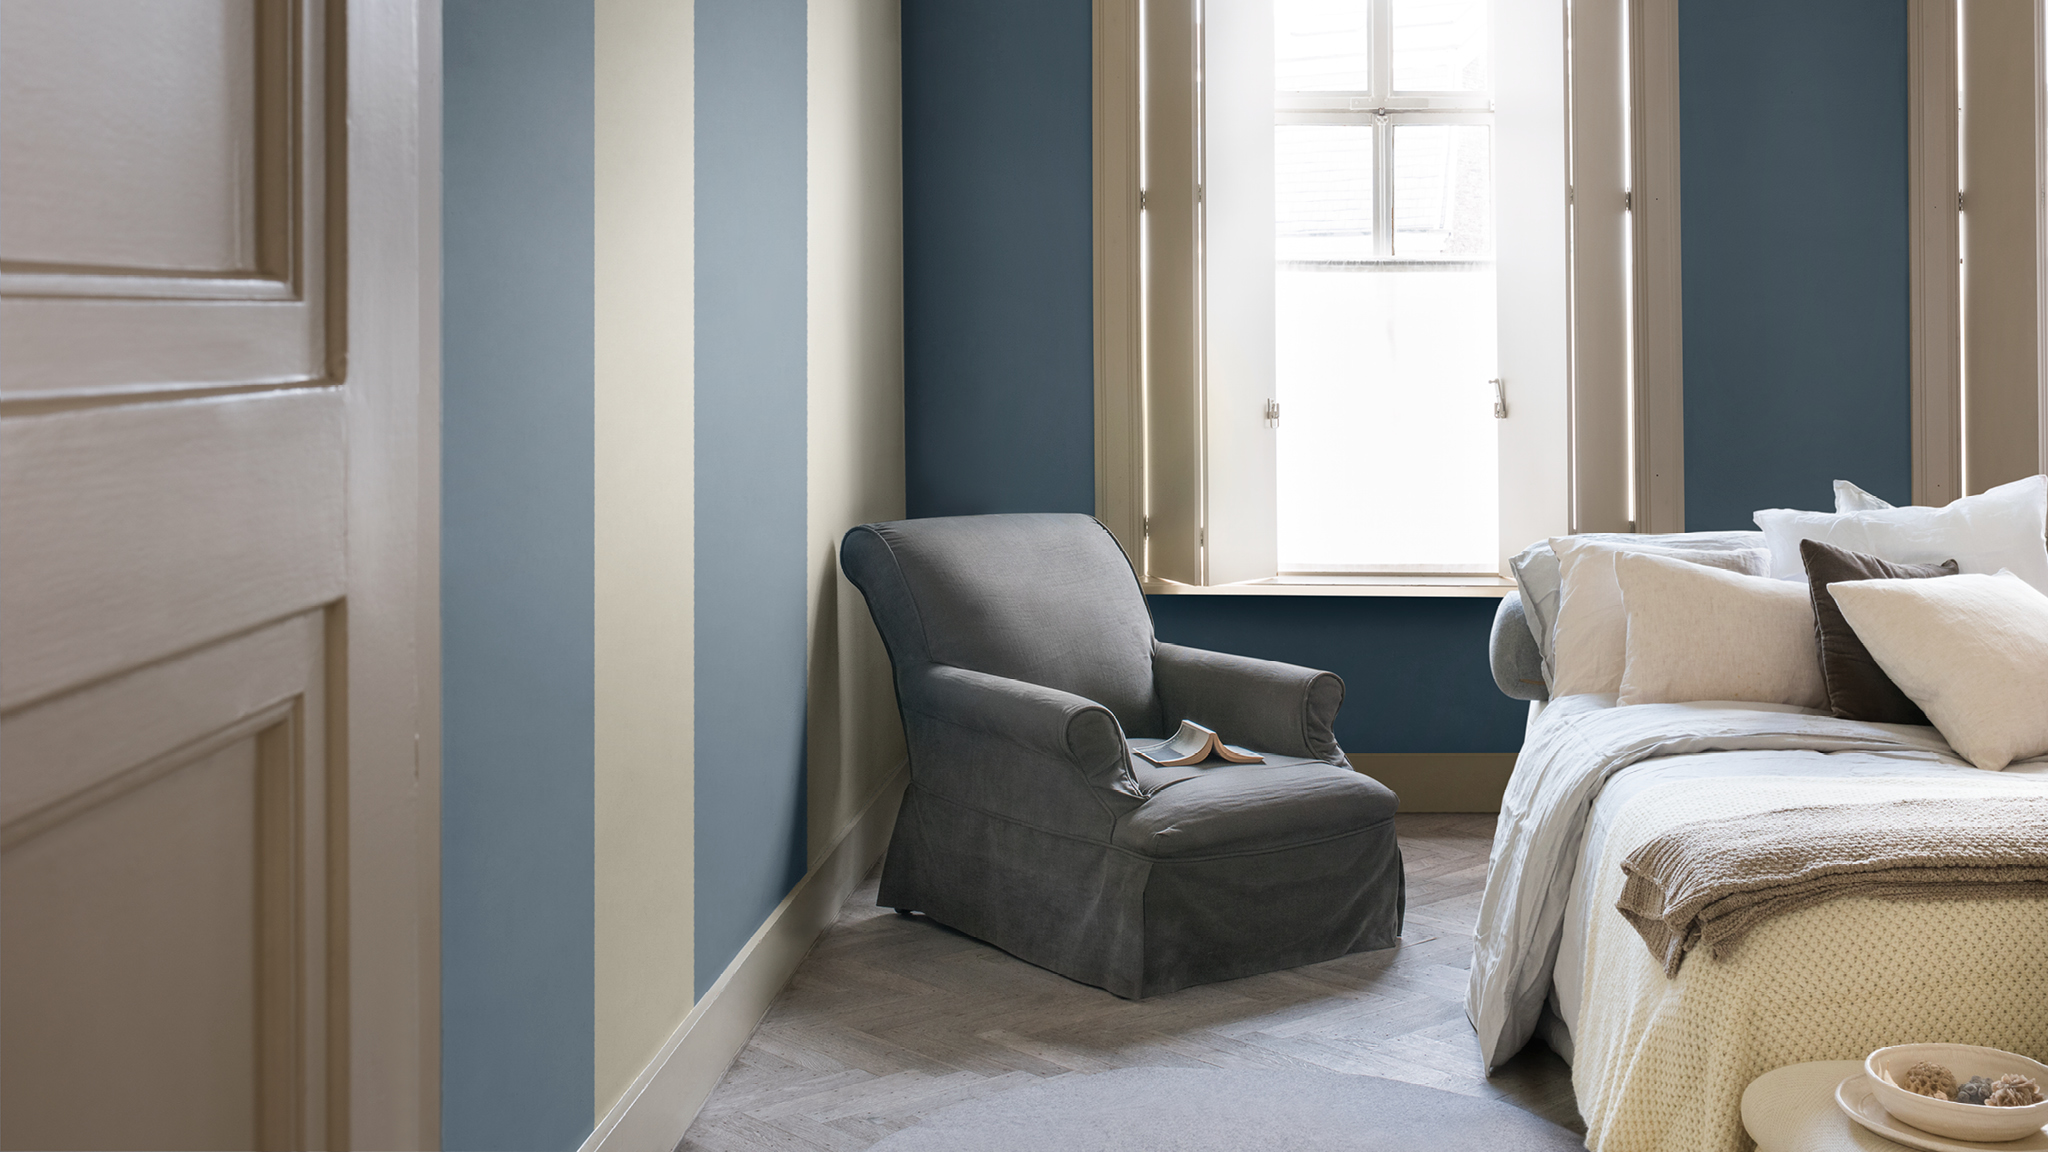 Blue is the colour of everyday and gives a restful, natural feeling to a bedroom.